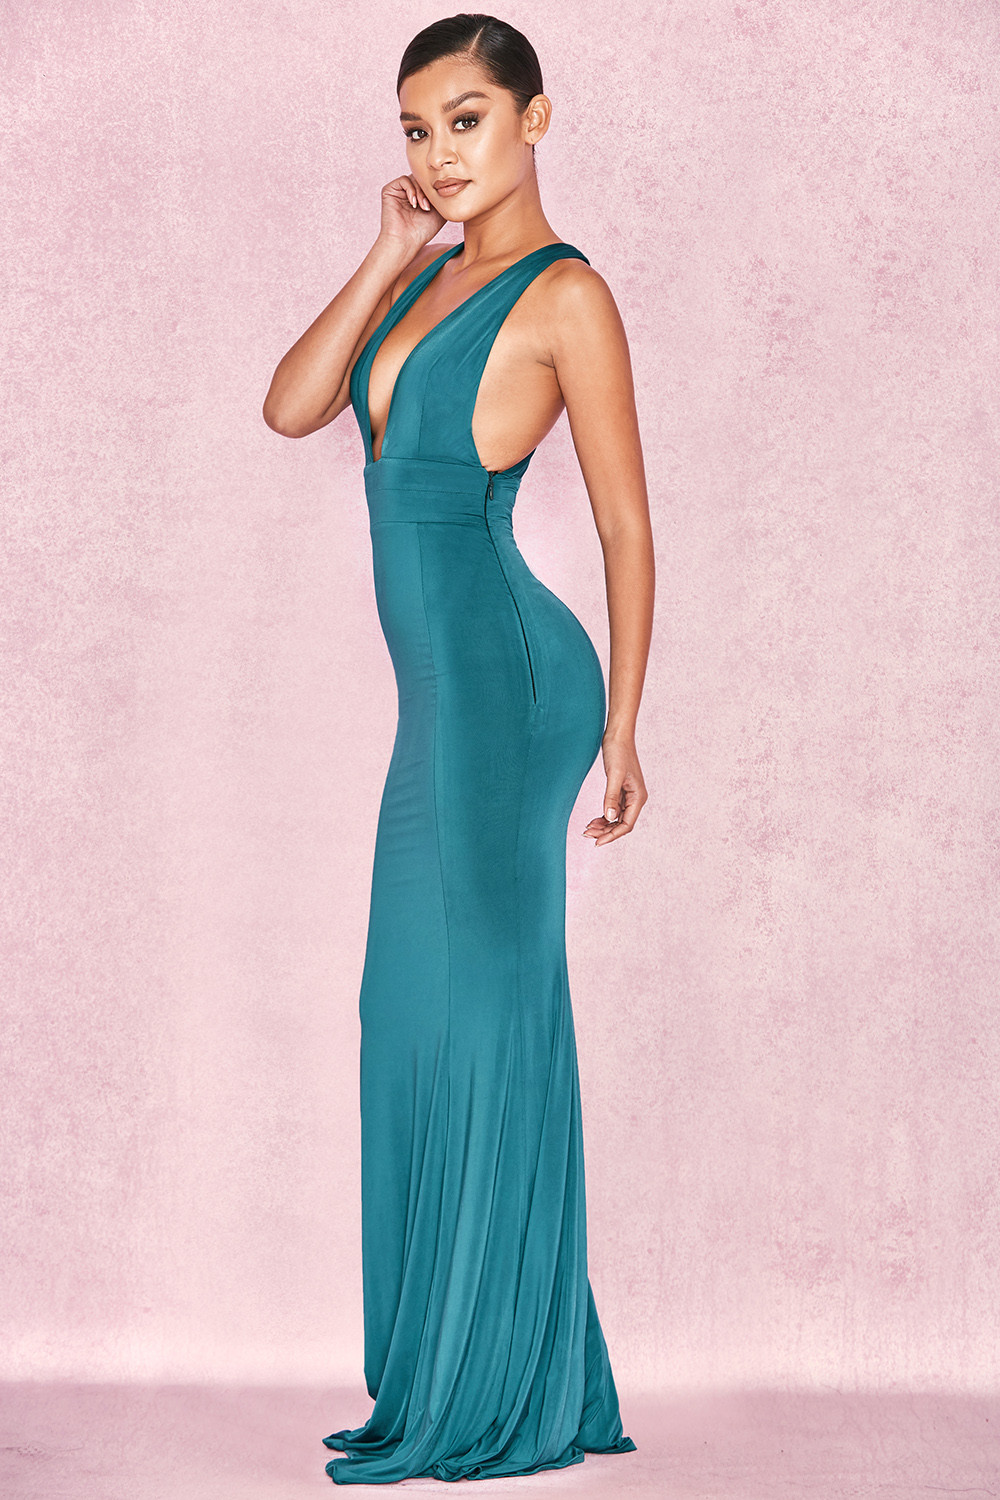 Clothing : Max Dresses : \'Miacova\' Teal Silky Jersey Plunge Maxi Dress